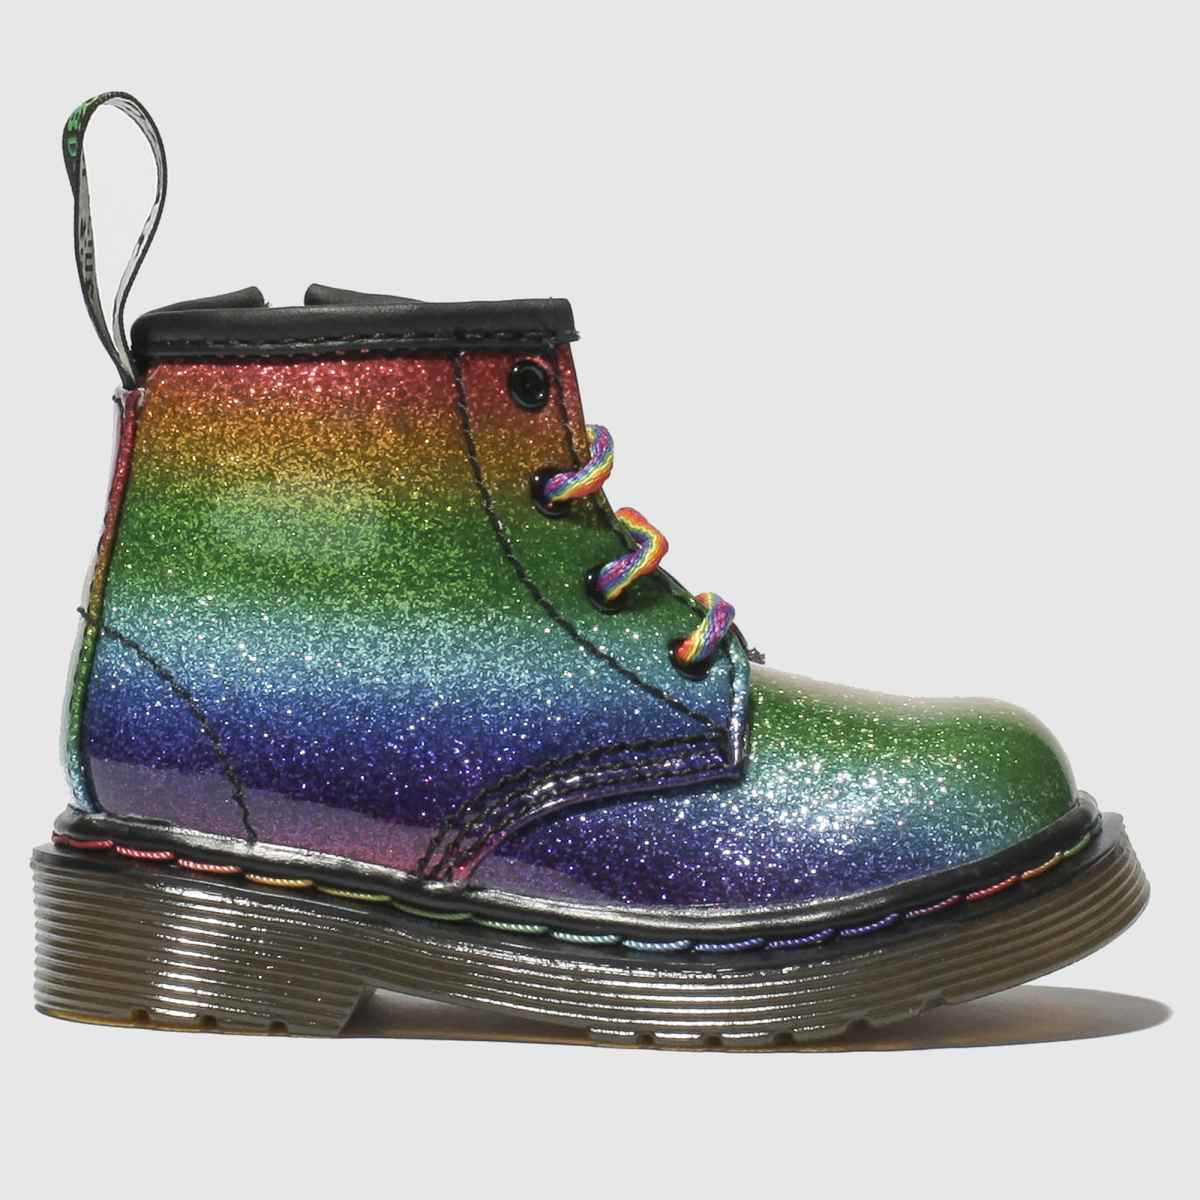 Dr Martens Green & Red 1460 Glitter Boots Toddler